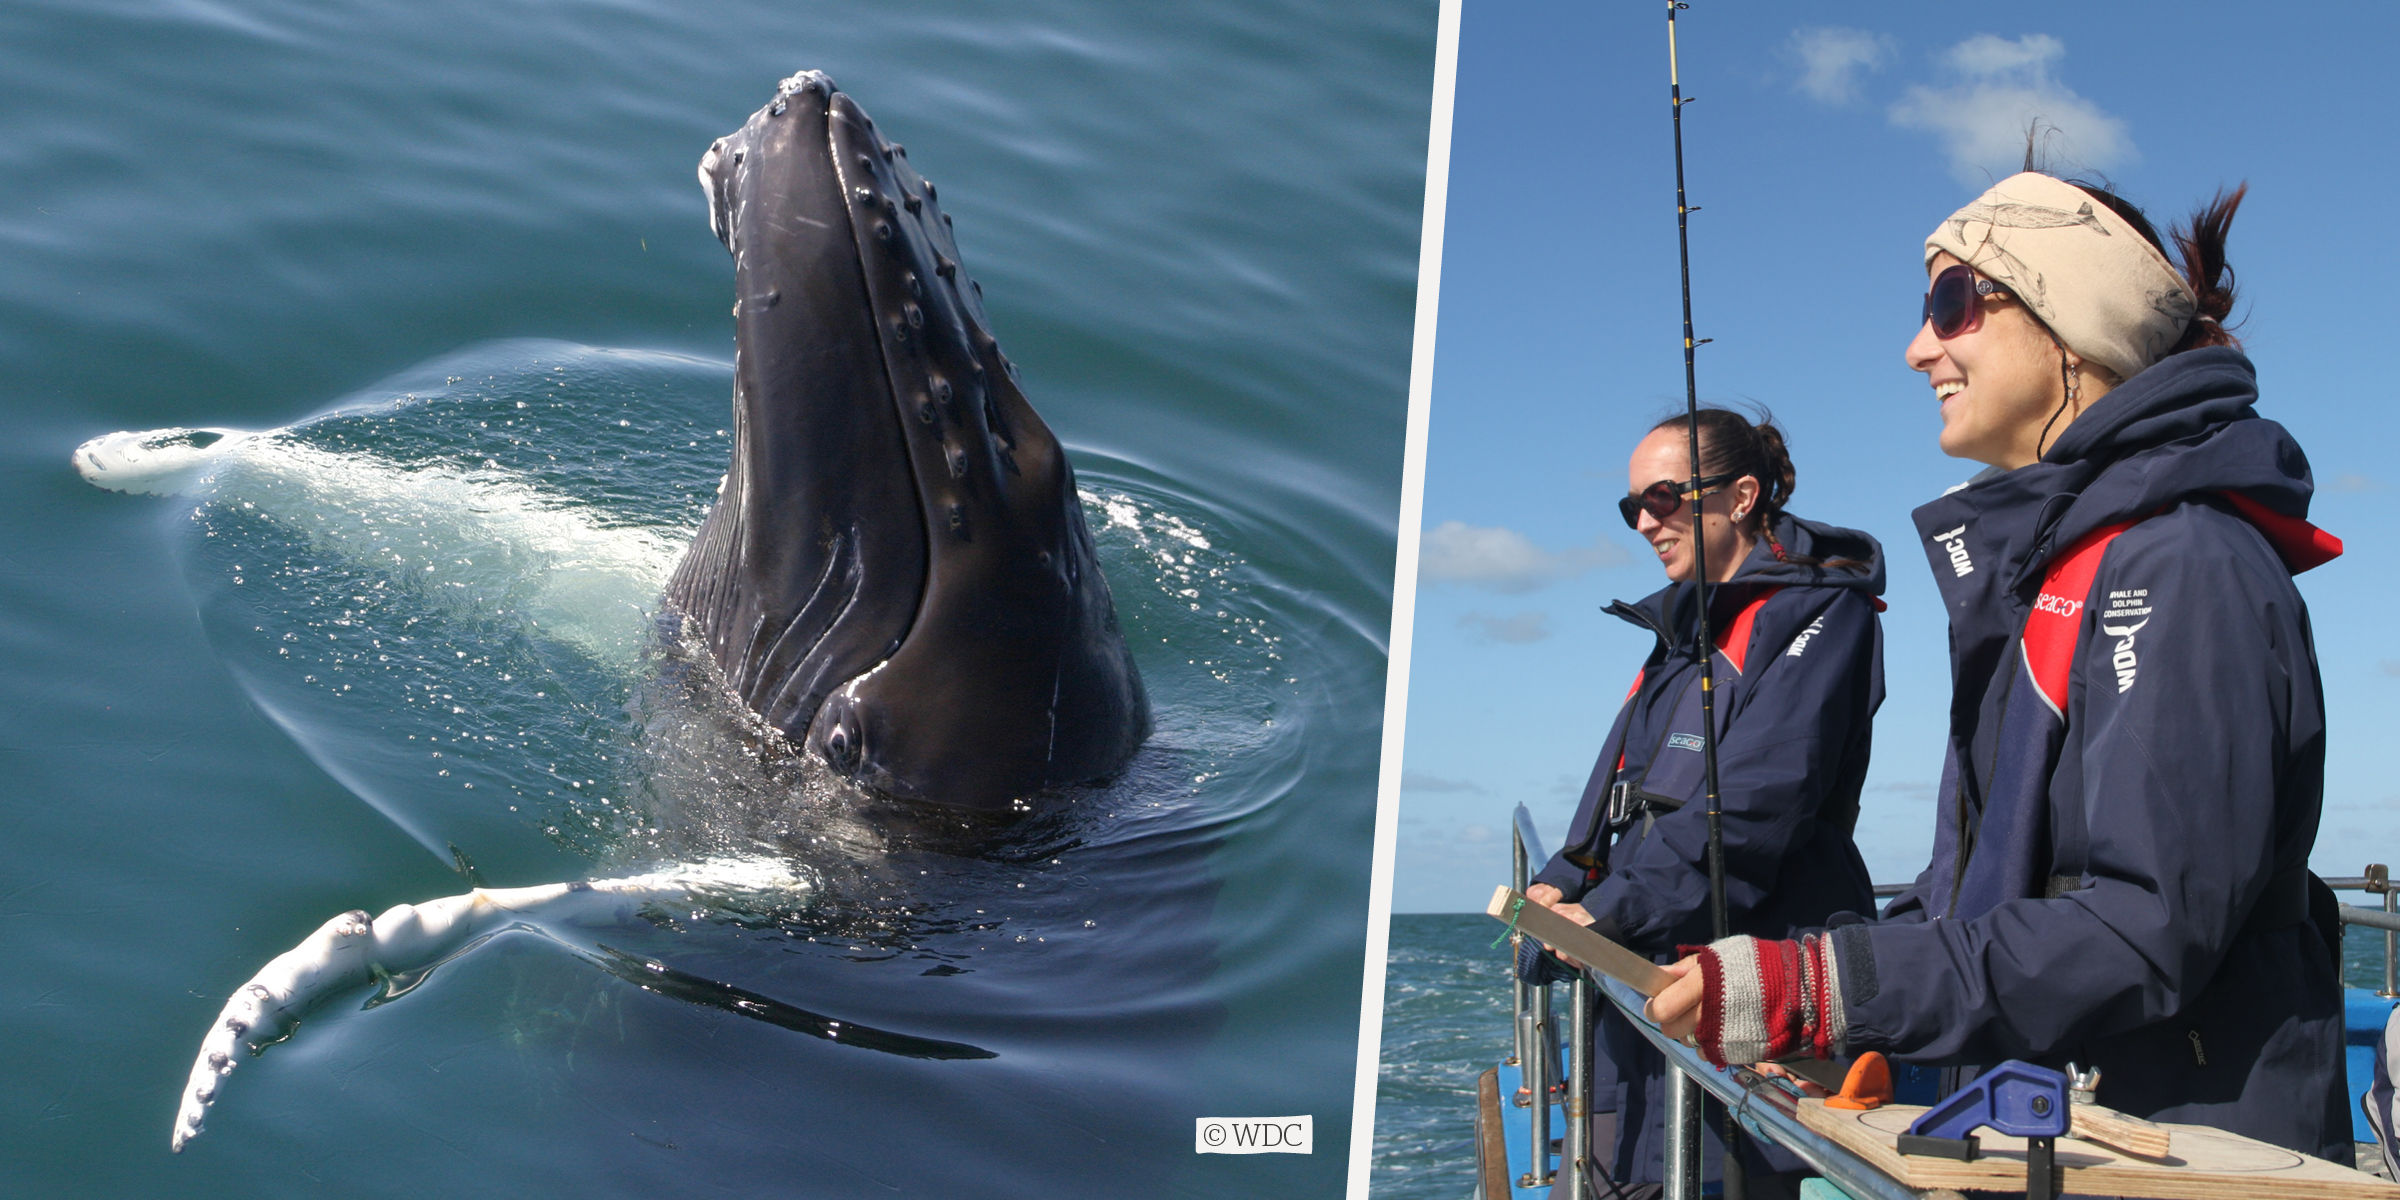 WDC researching whales on a boat